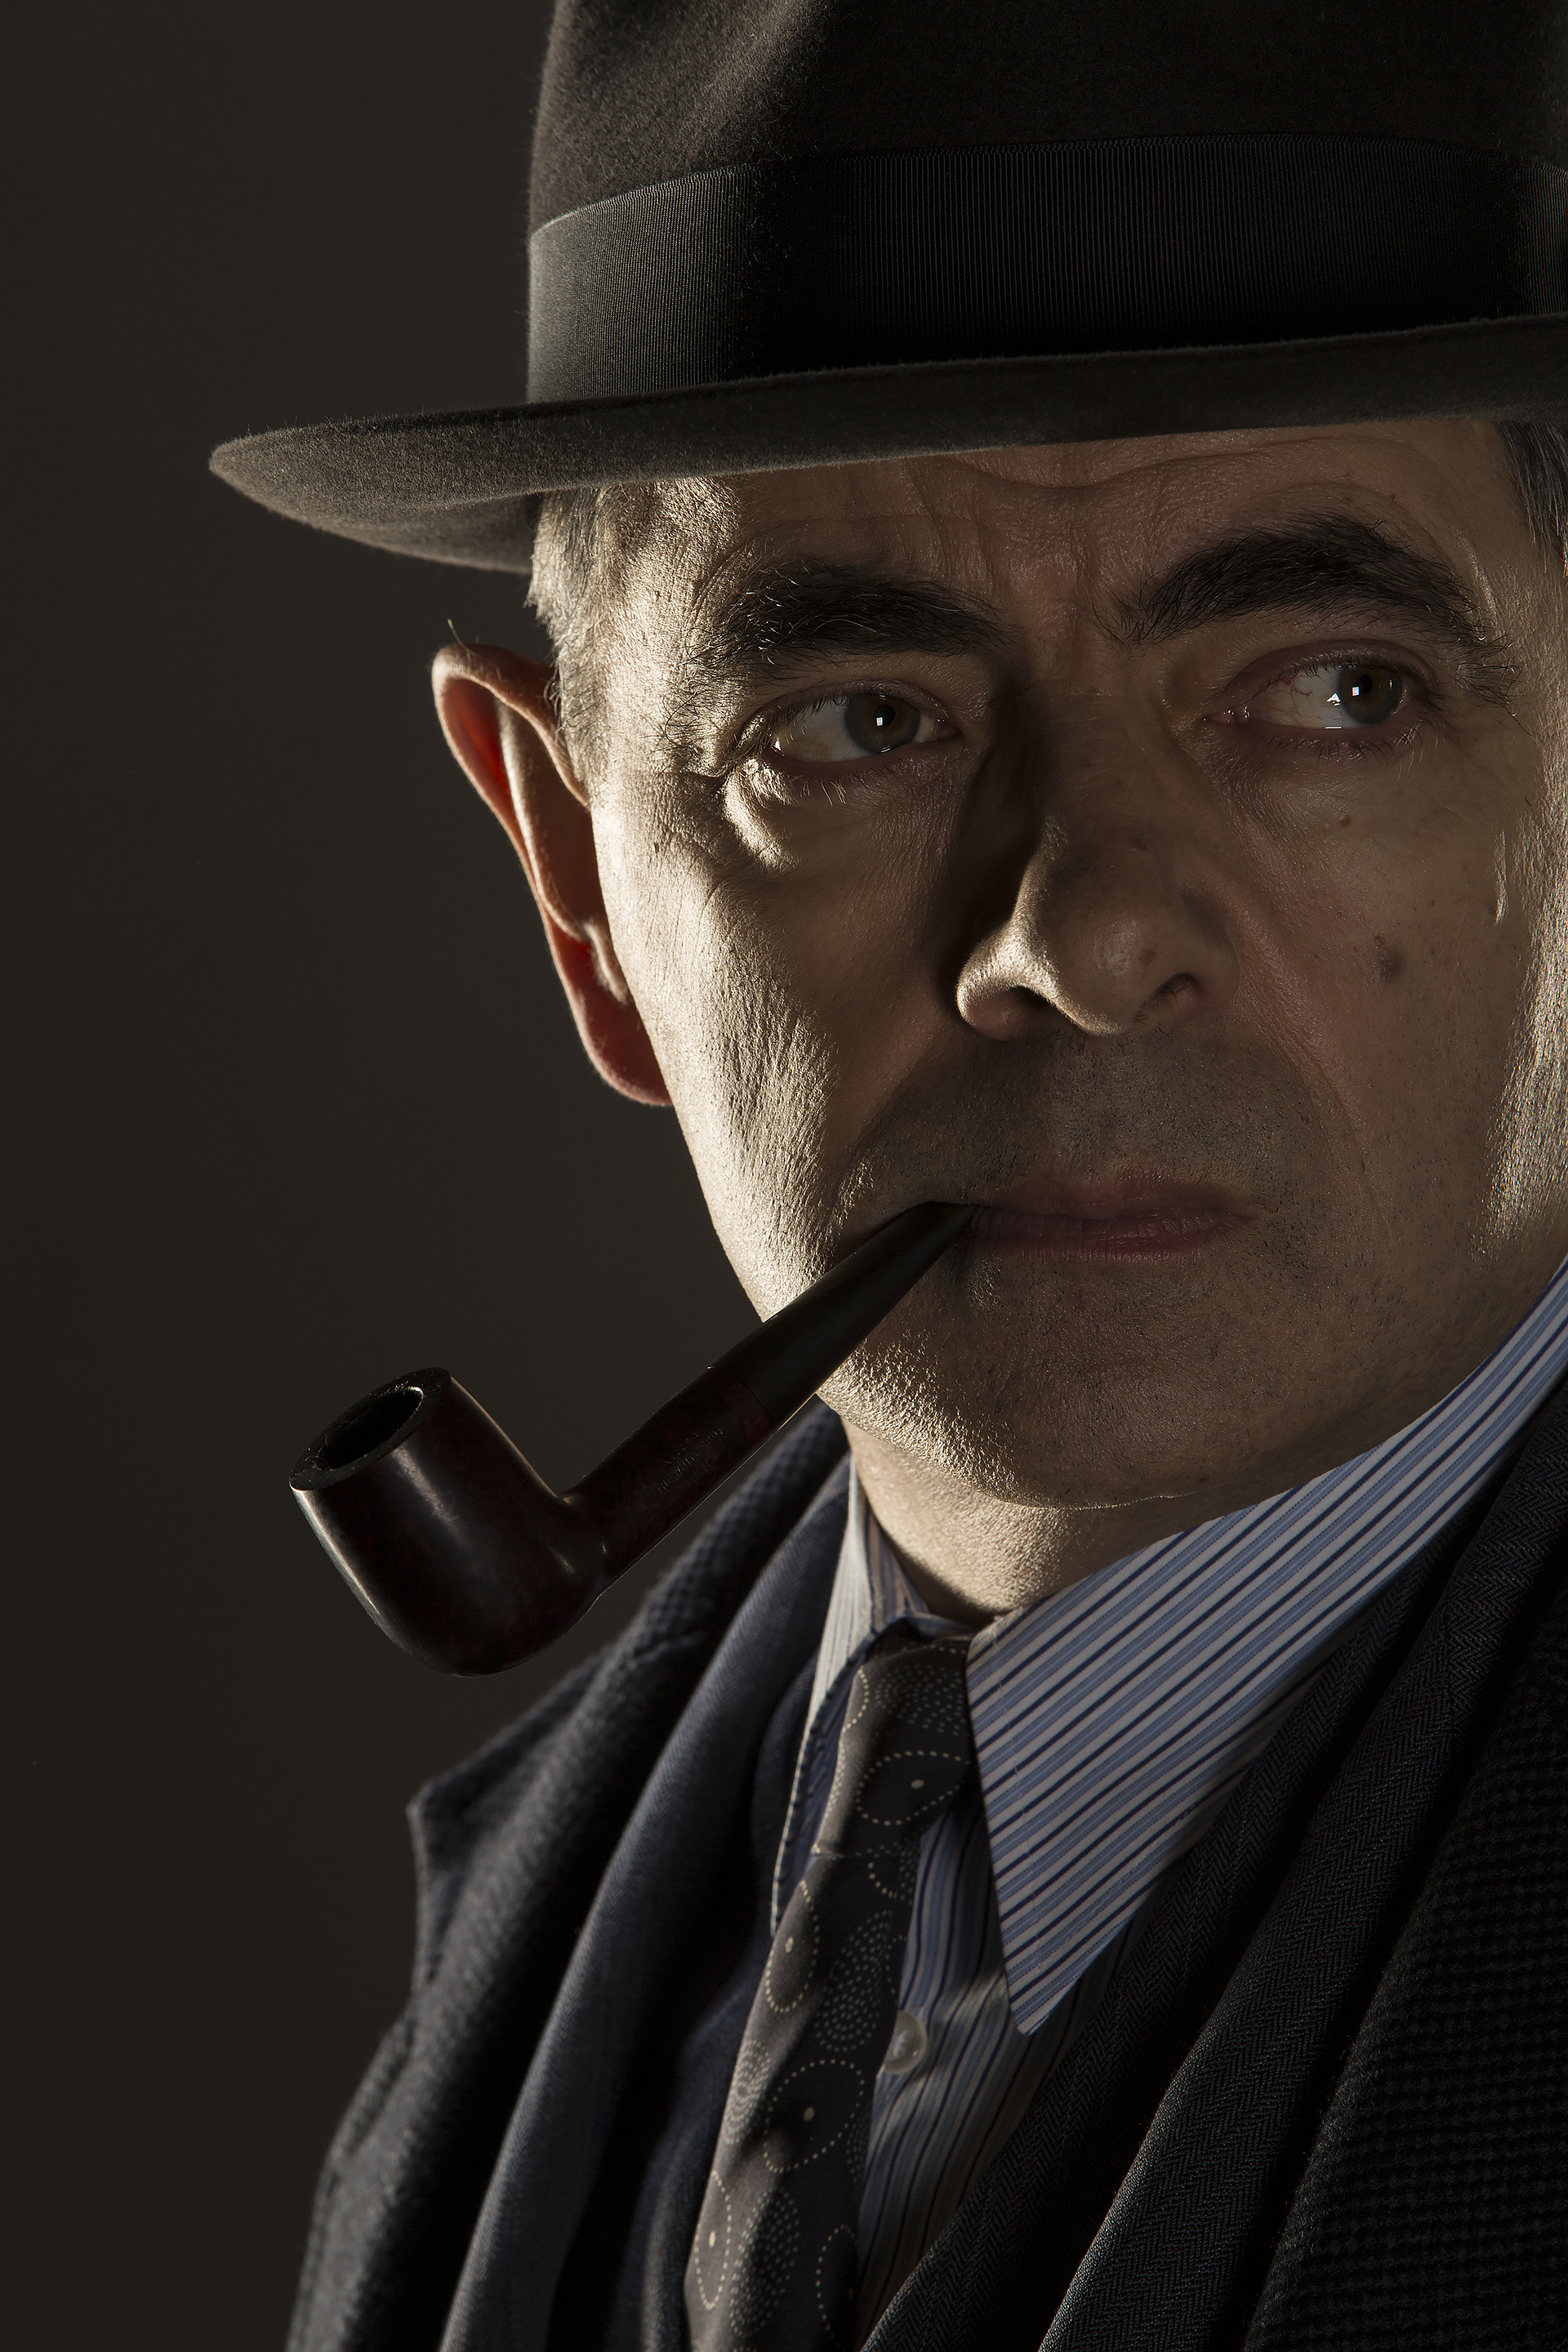 Jules Maigret (Rowan Atkinson) poses with a pipe and fedora.